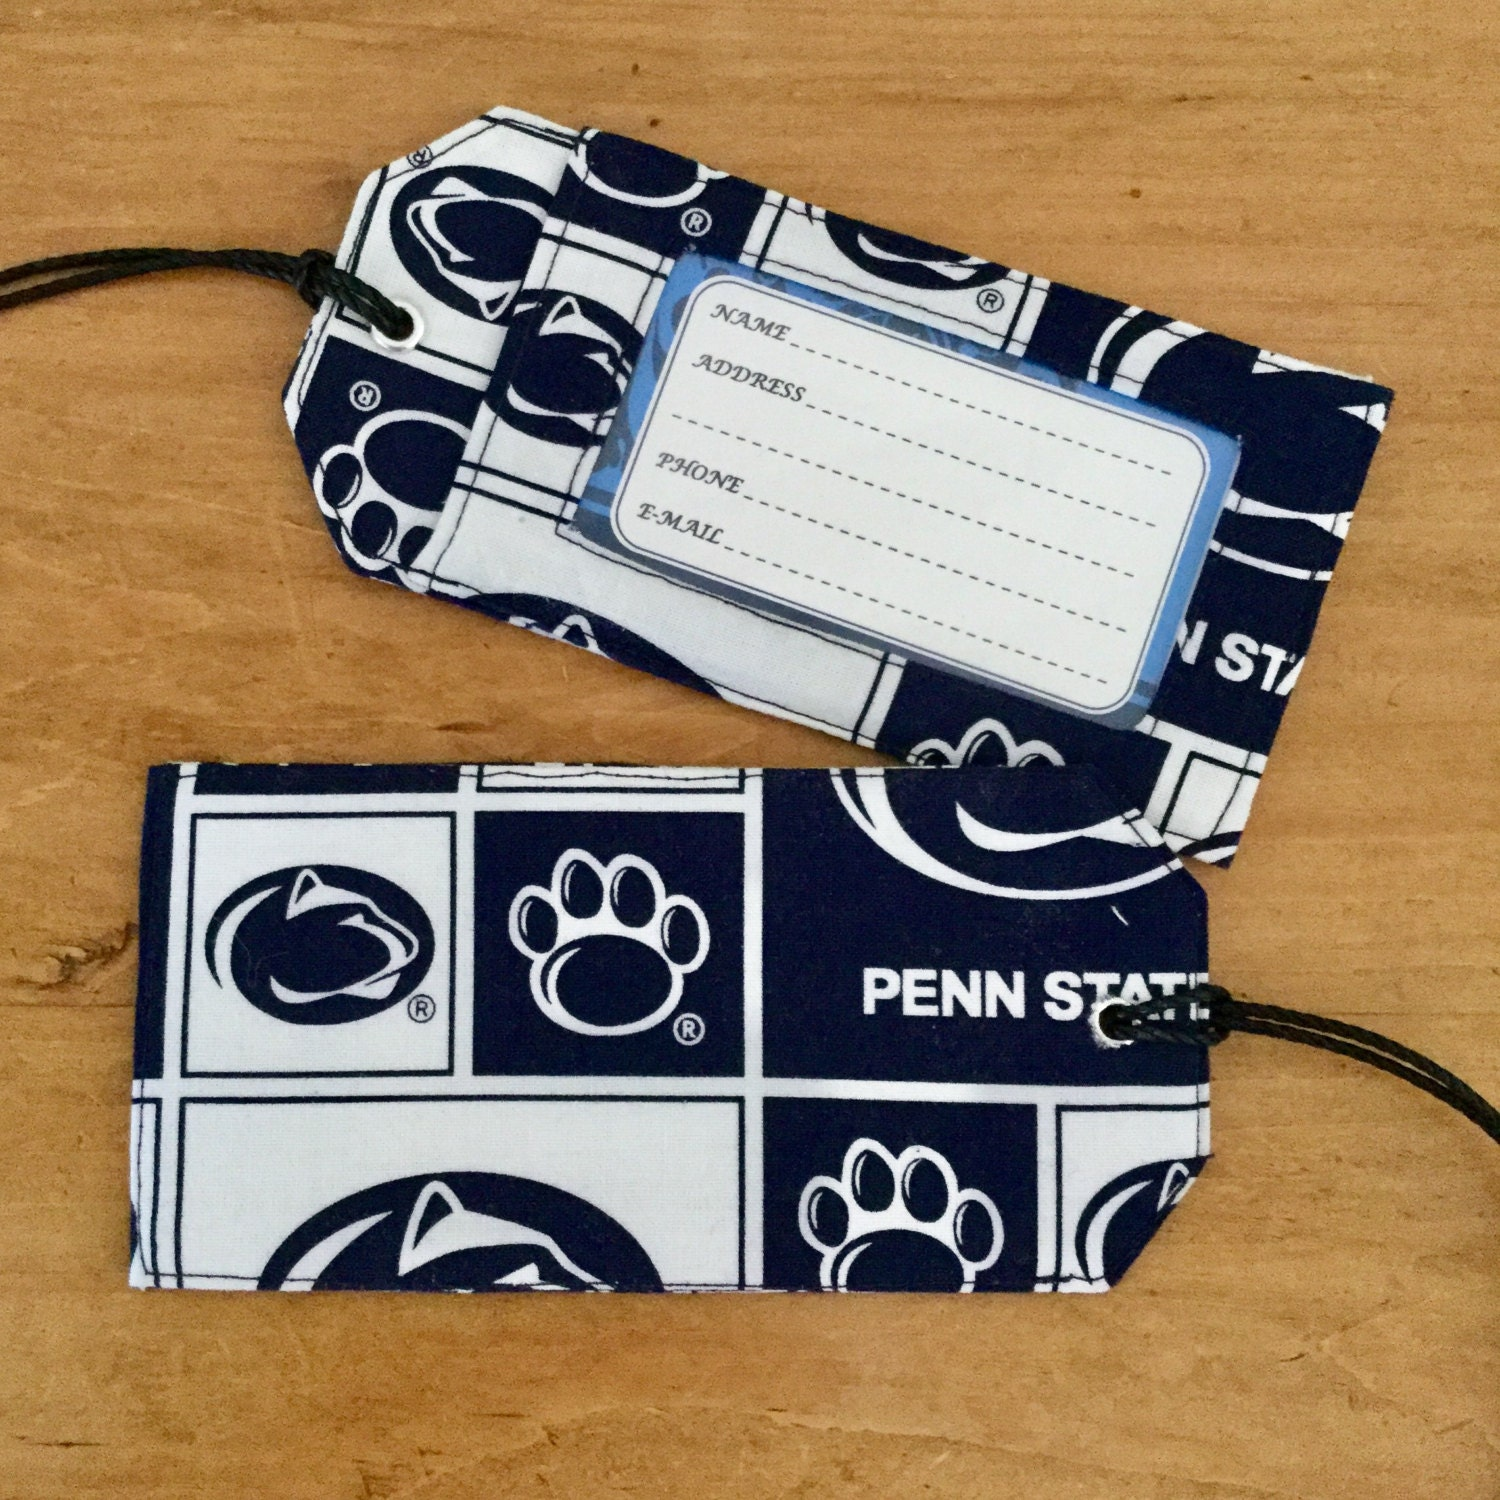 Luggage tag. Penn State luggage tag. Gift card holder.